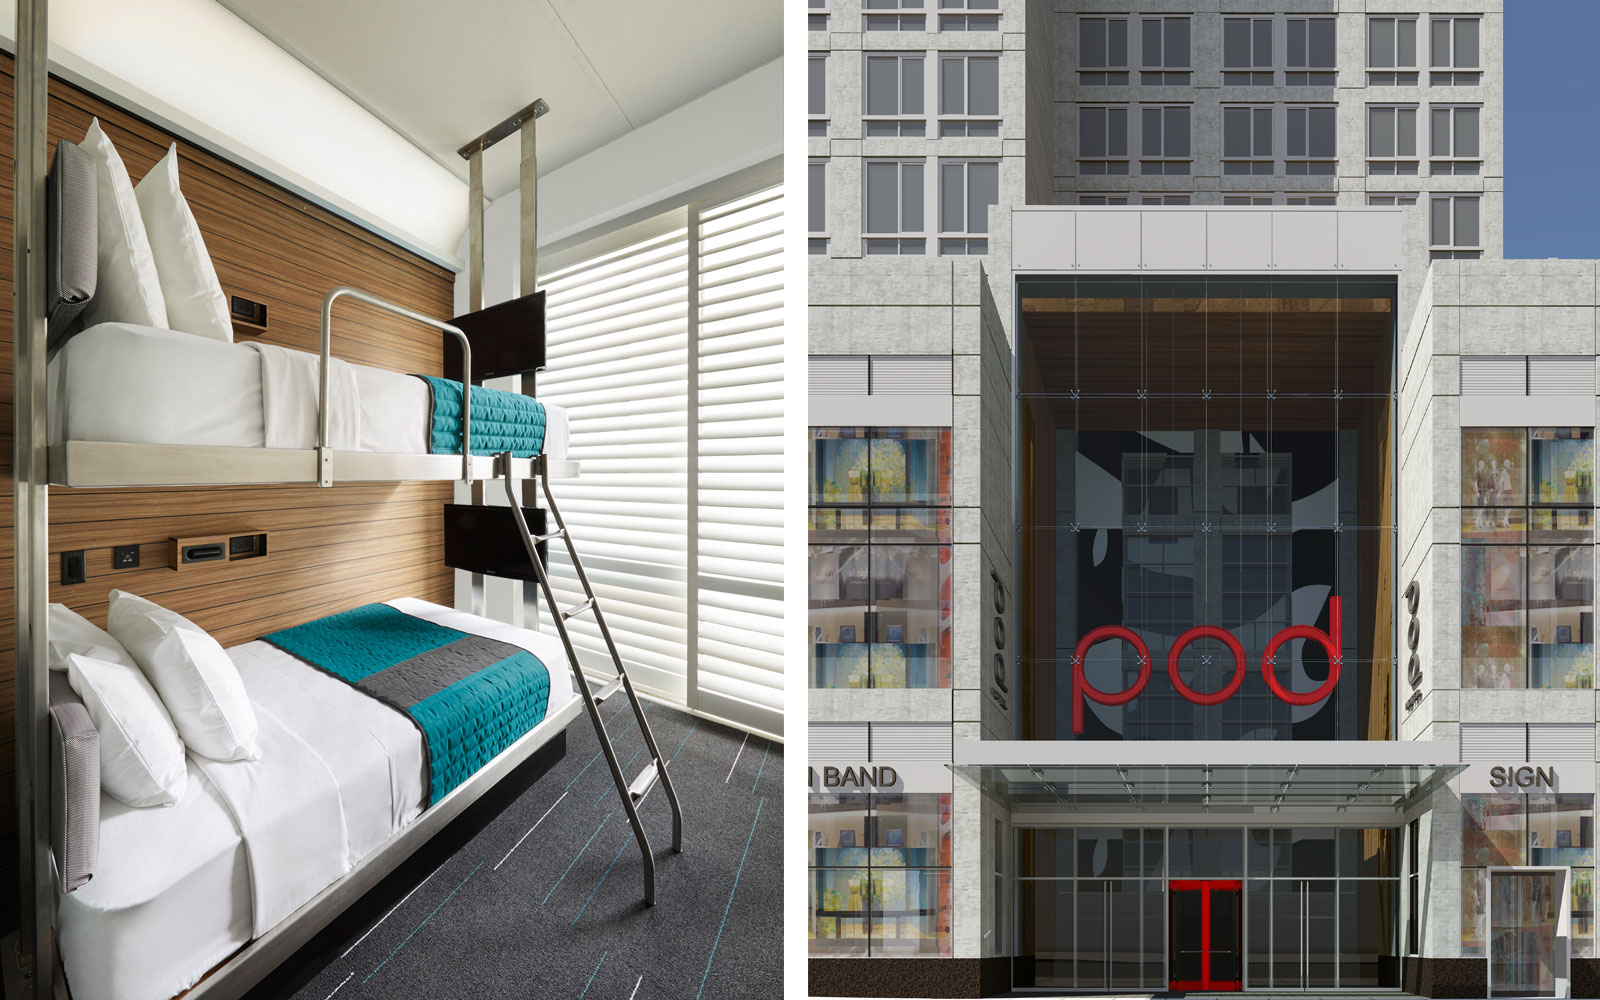 The Pod Hotel in Times Square